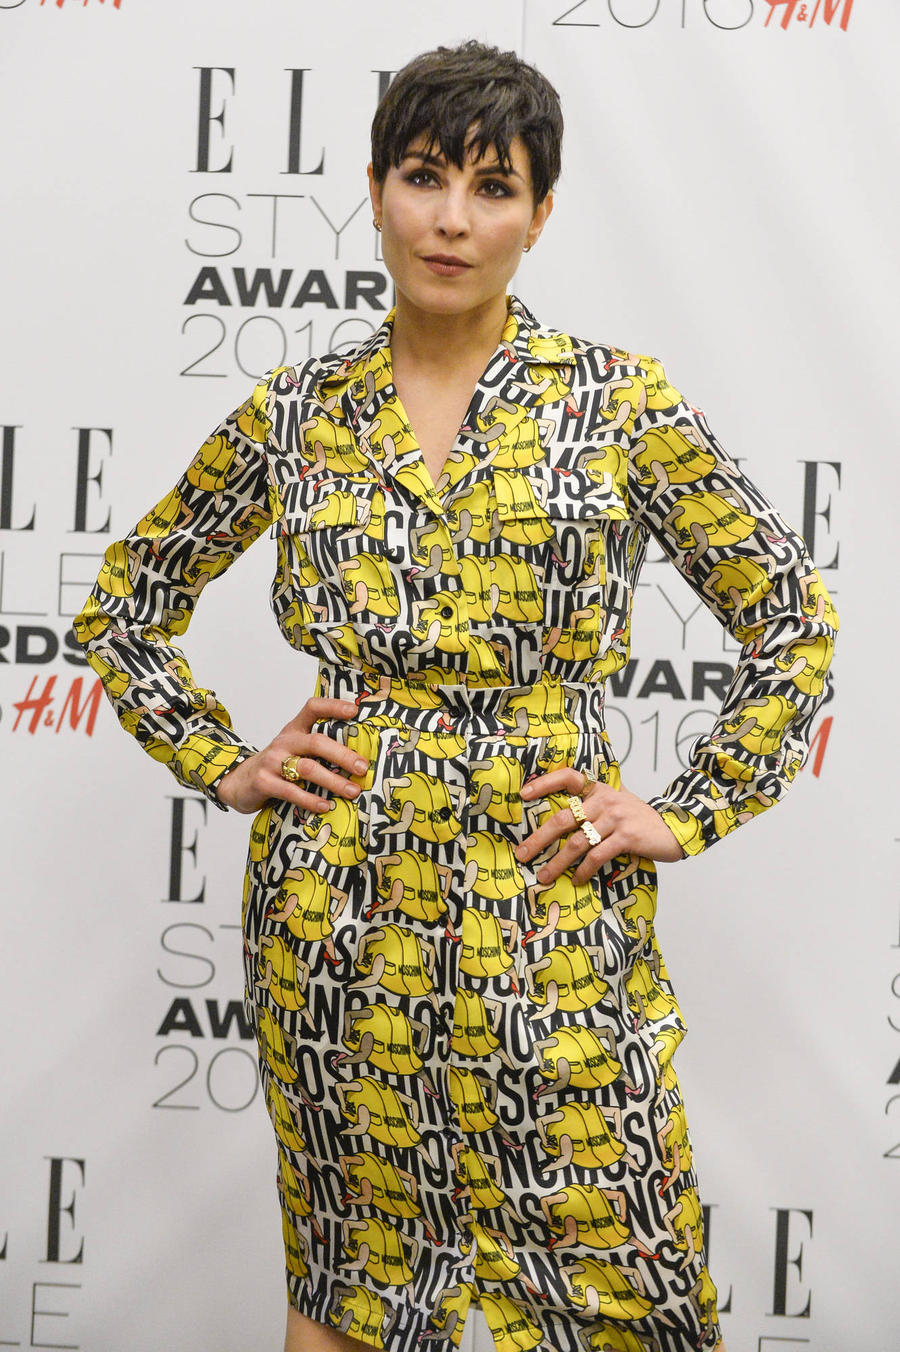 Noomi Rapace Joins Prometheus Sequel